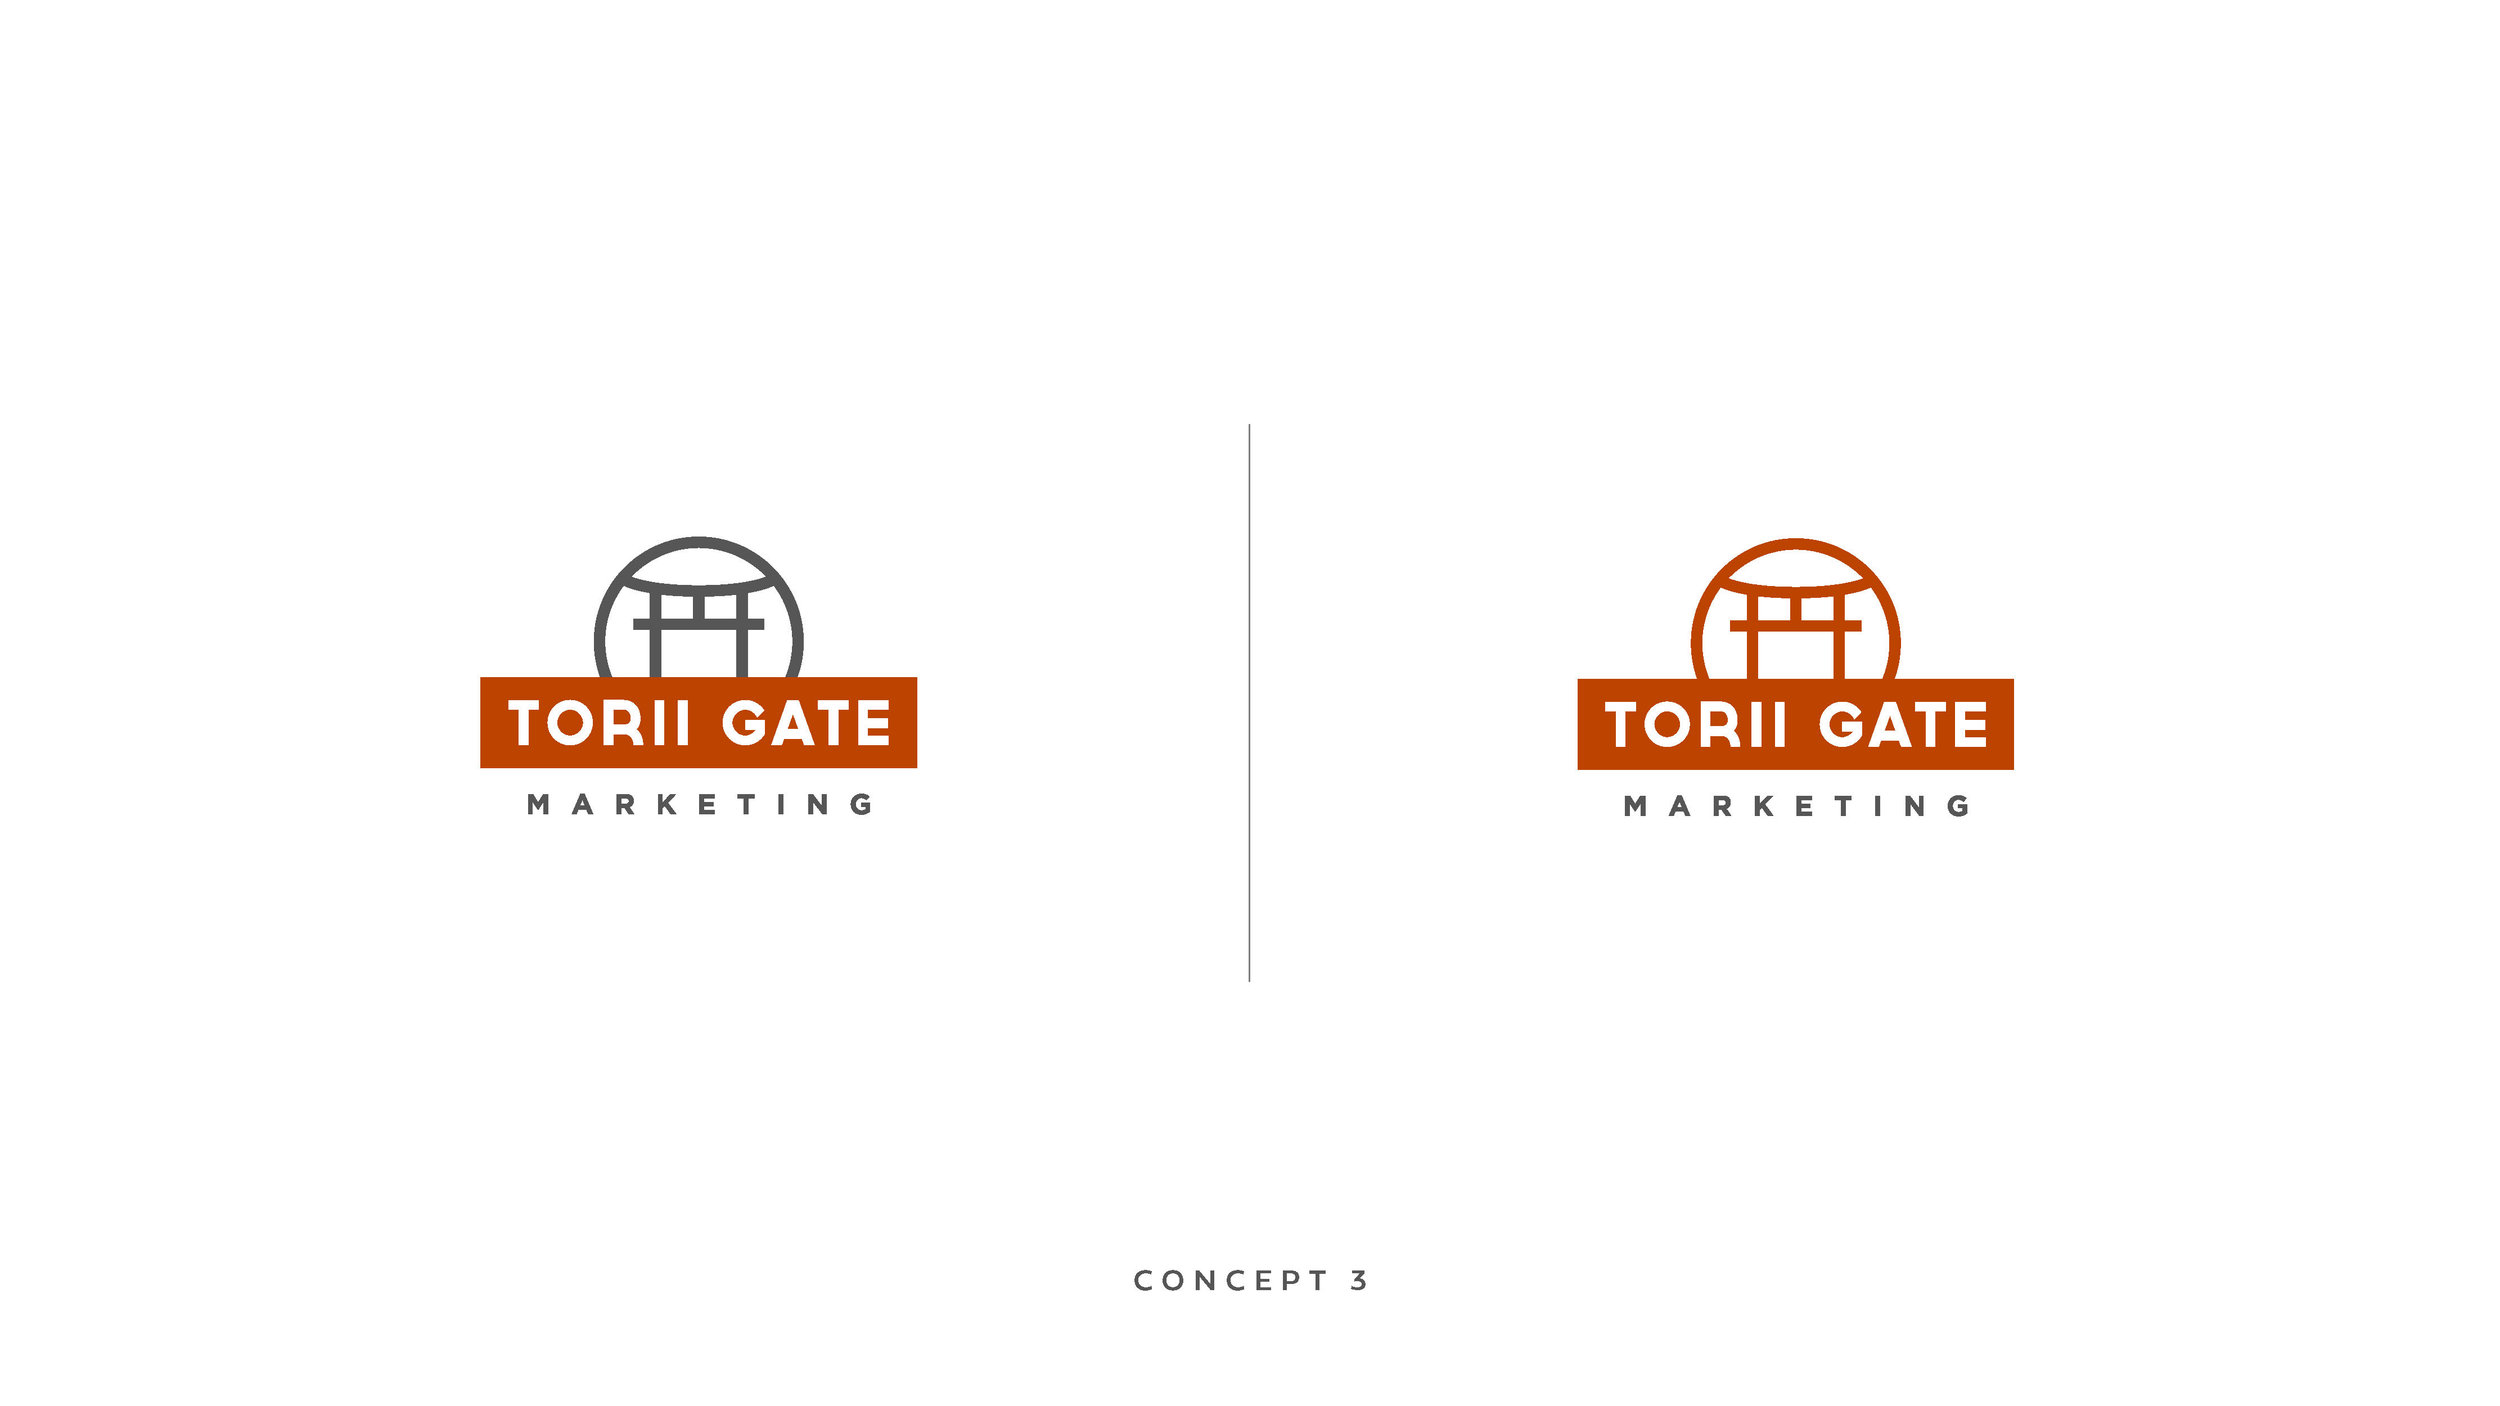 TGM_Revised_Logos_AR_Page_5.jpg